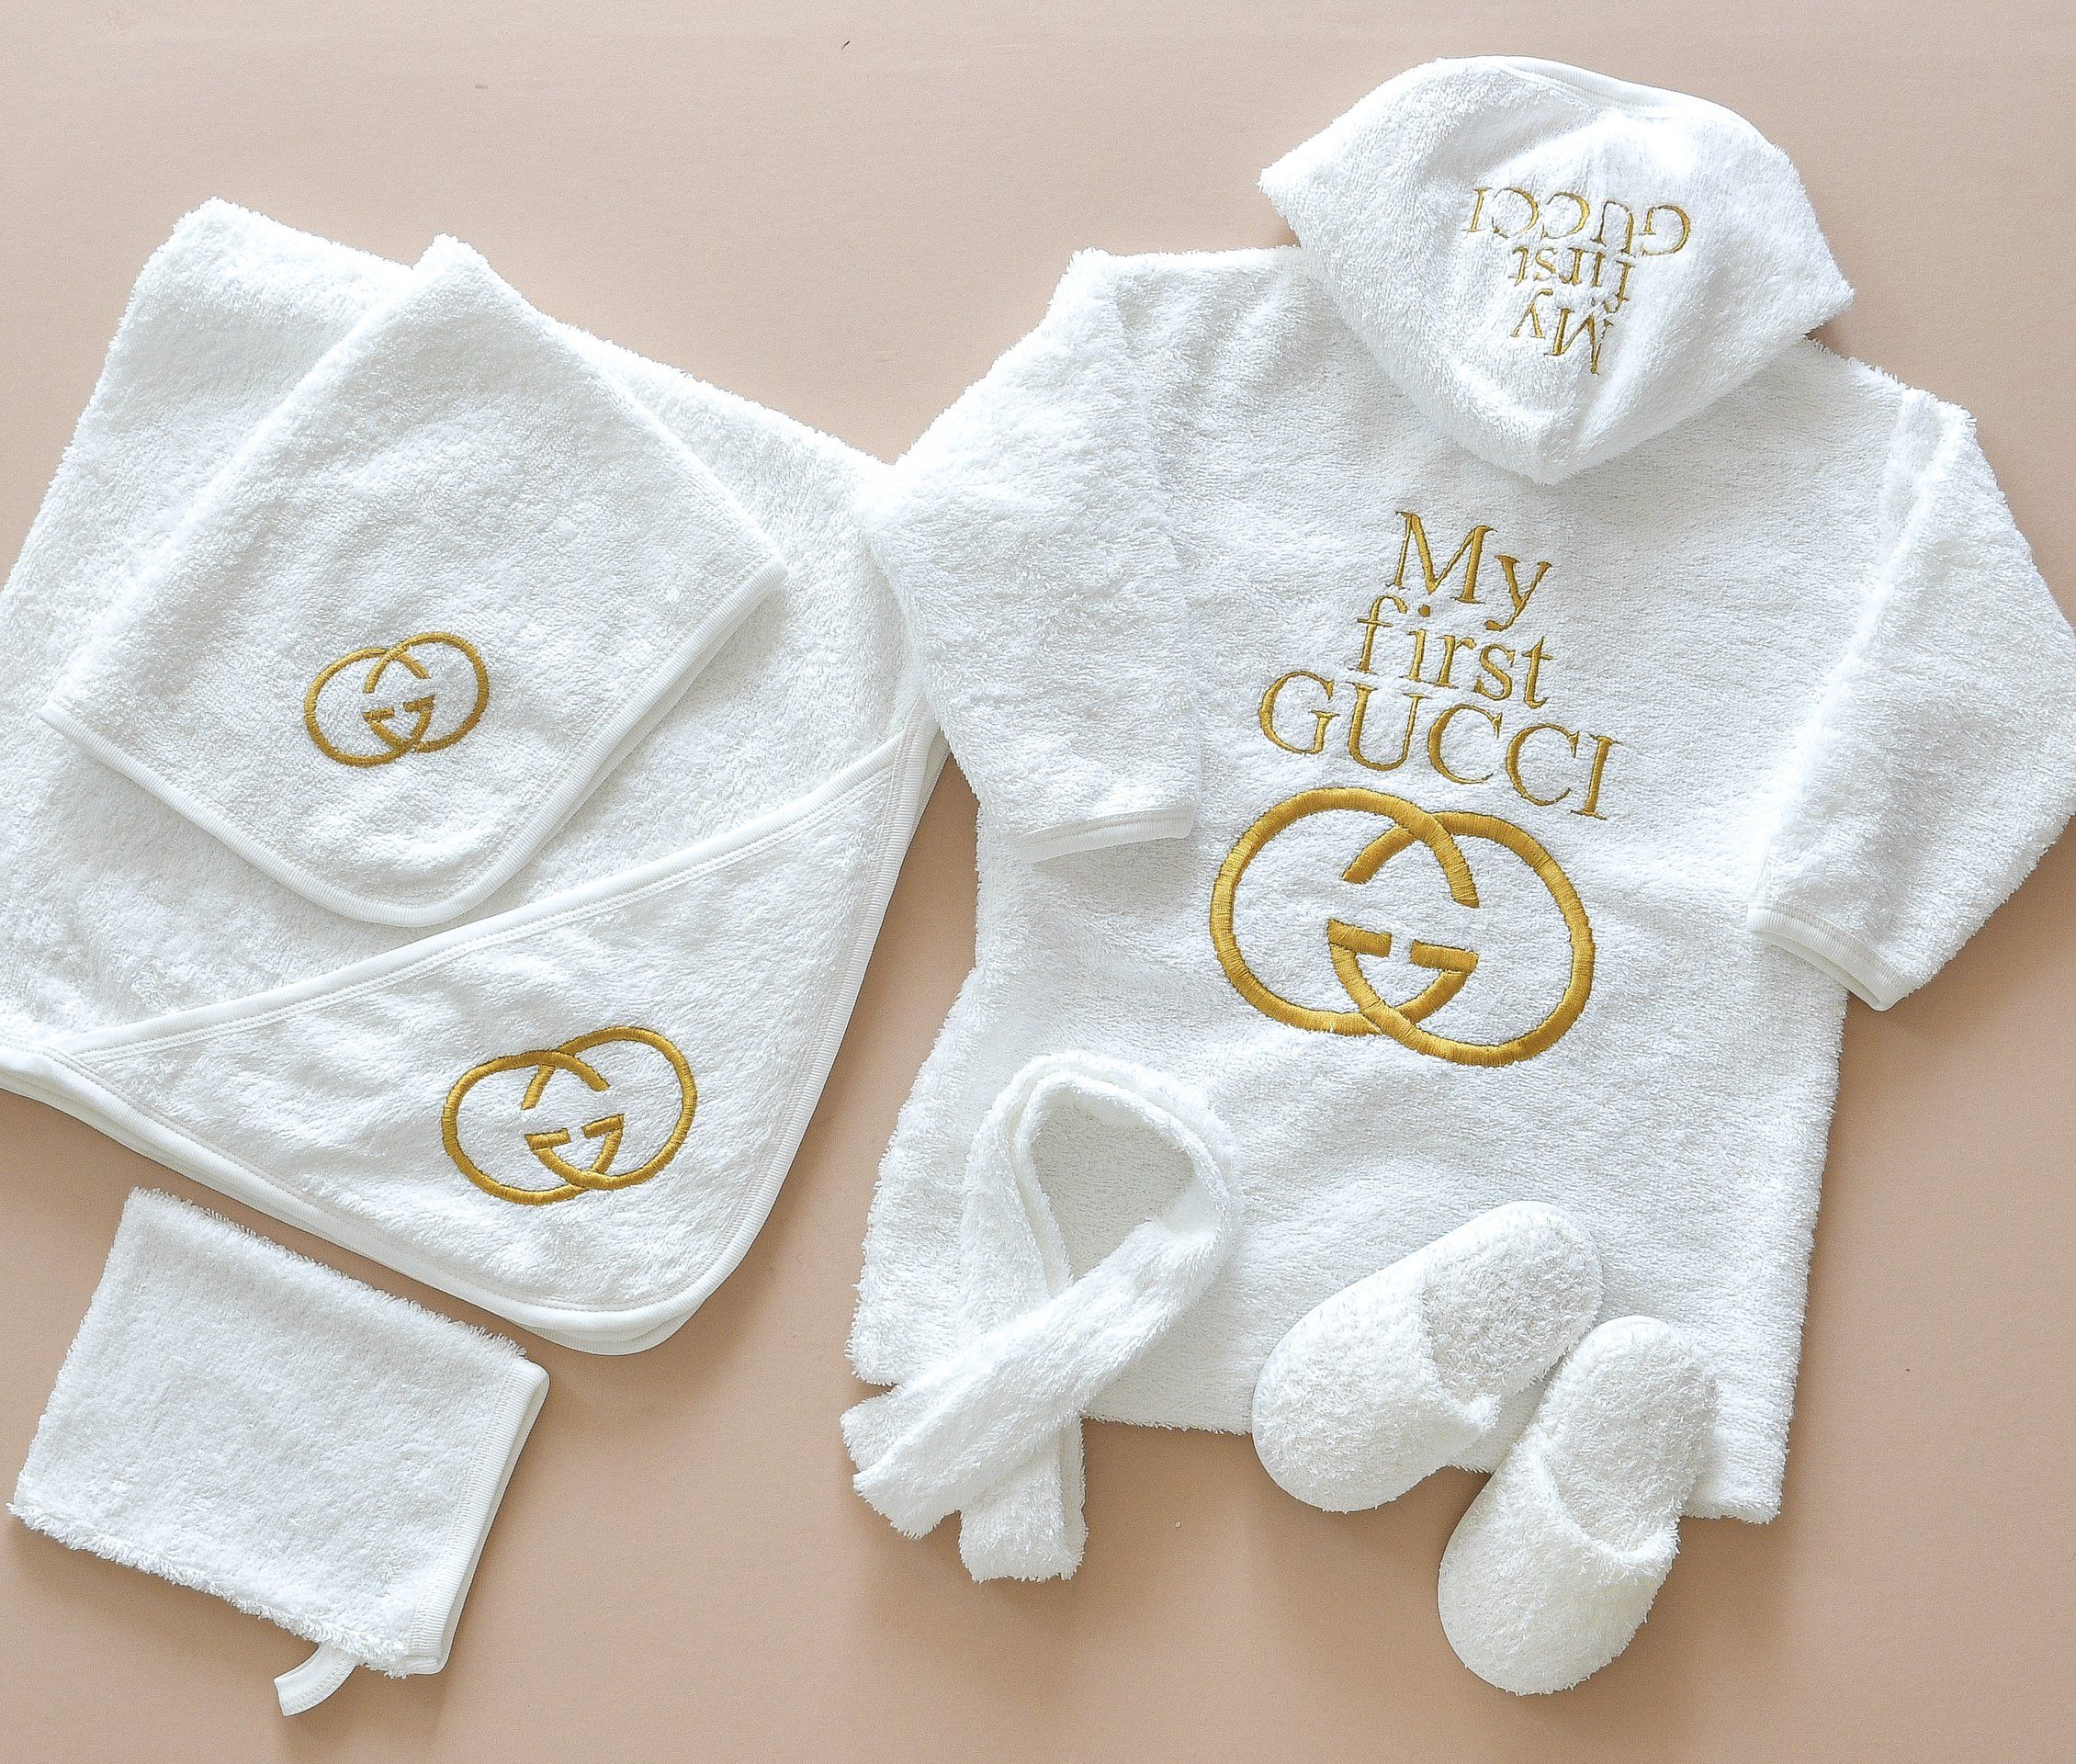 My First Gucci Inspired Newborn Baby Set  Baby outfits newborn